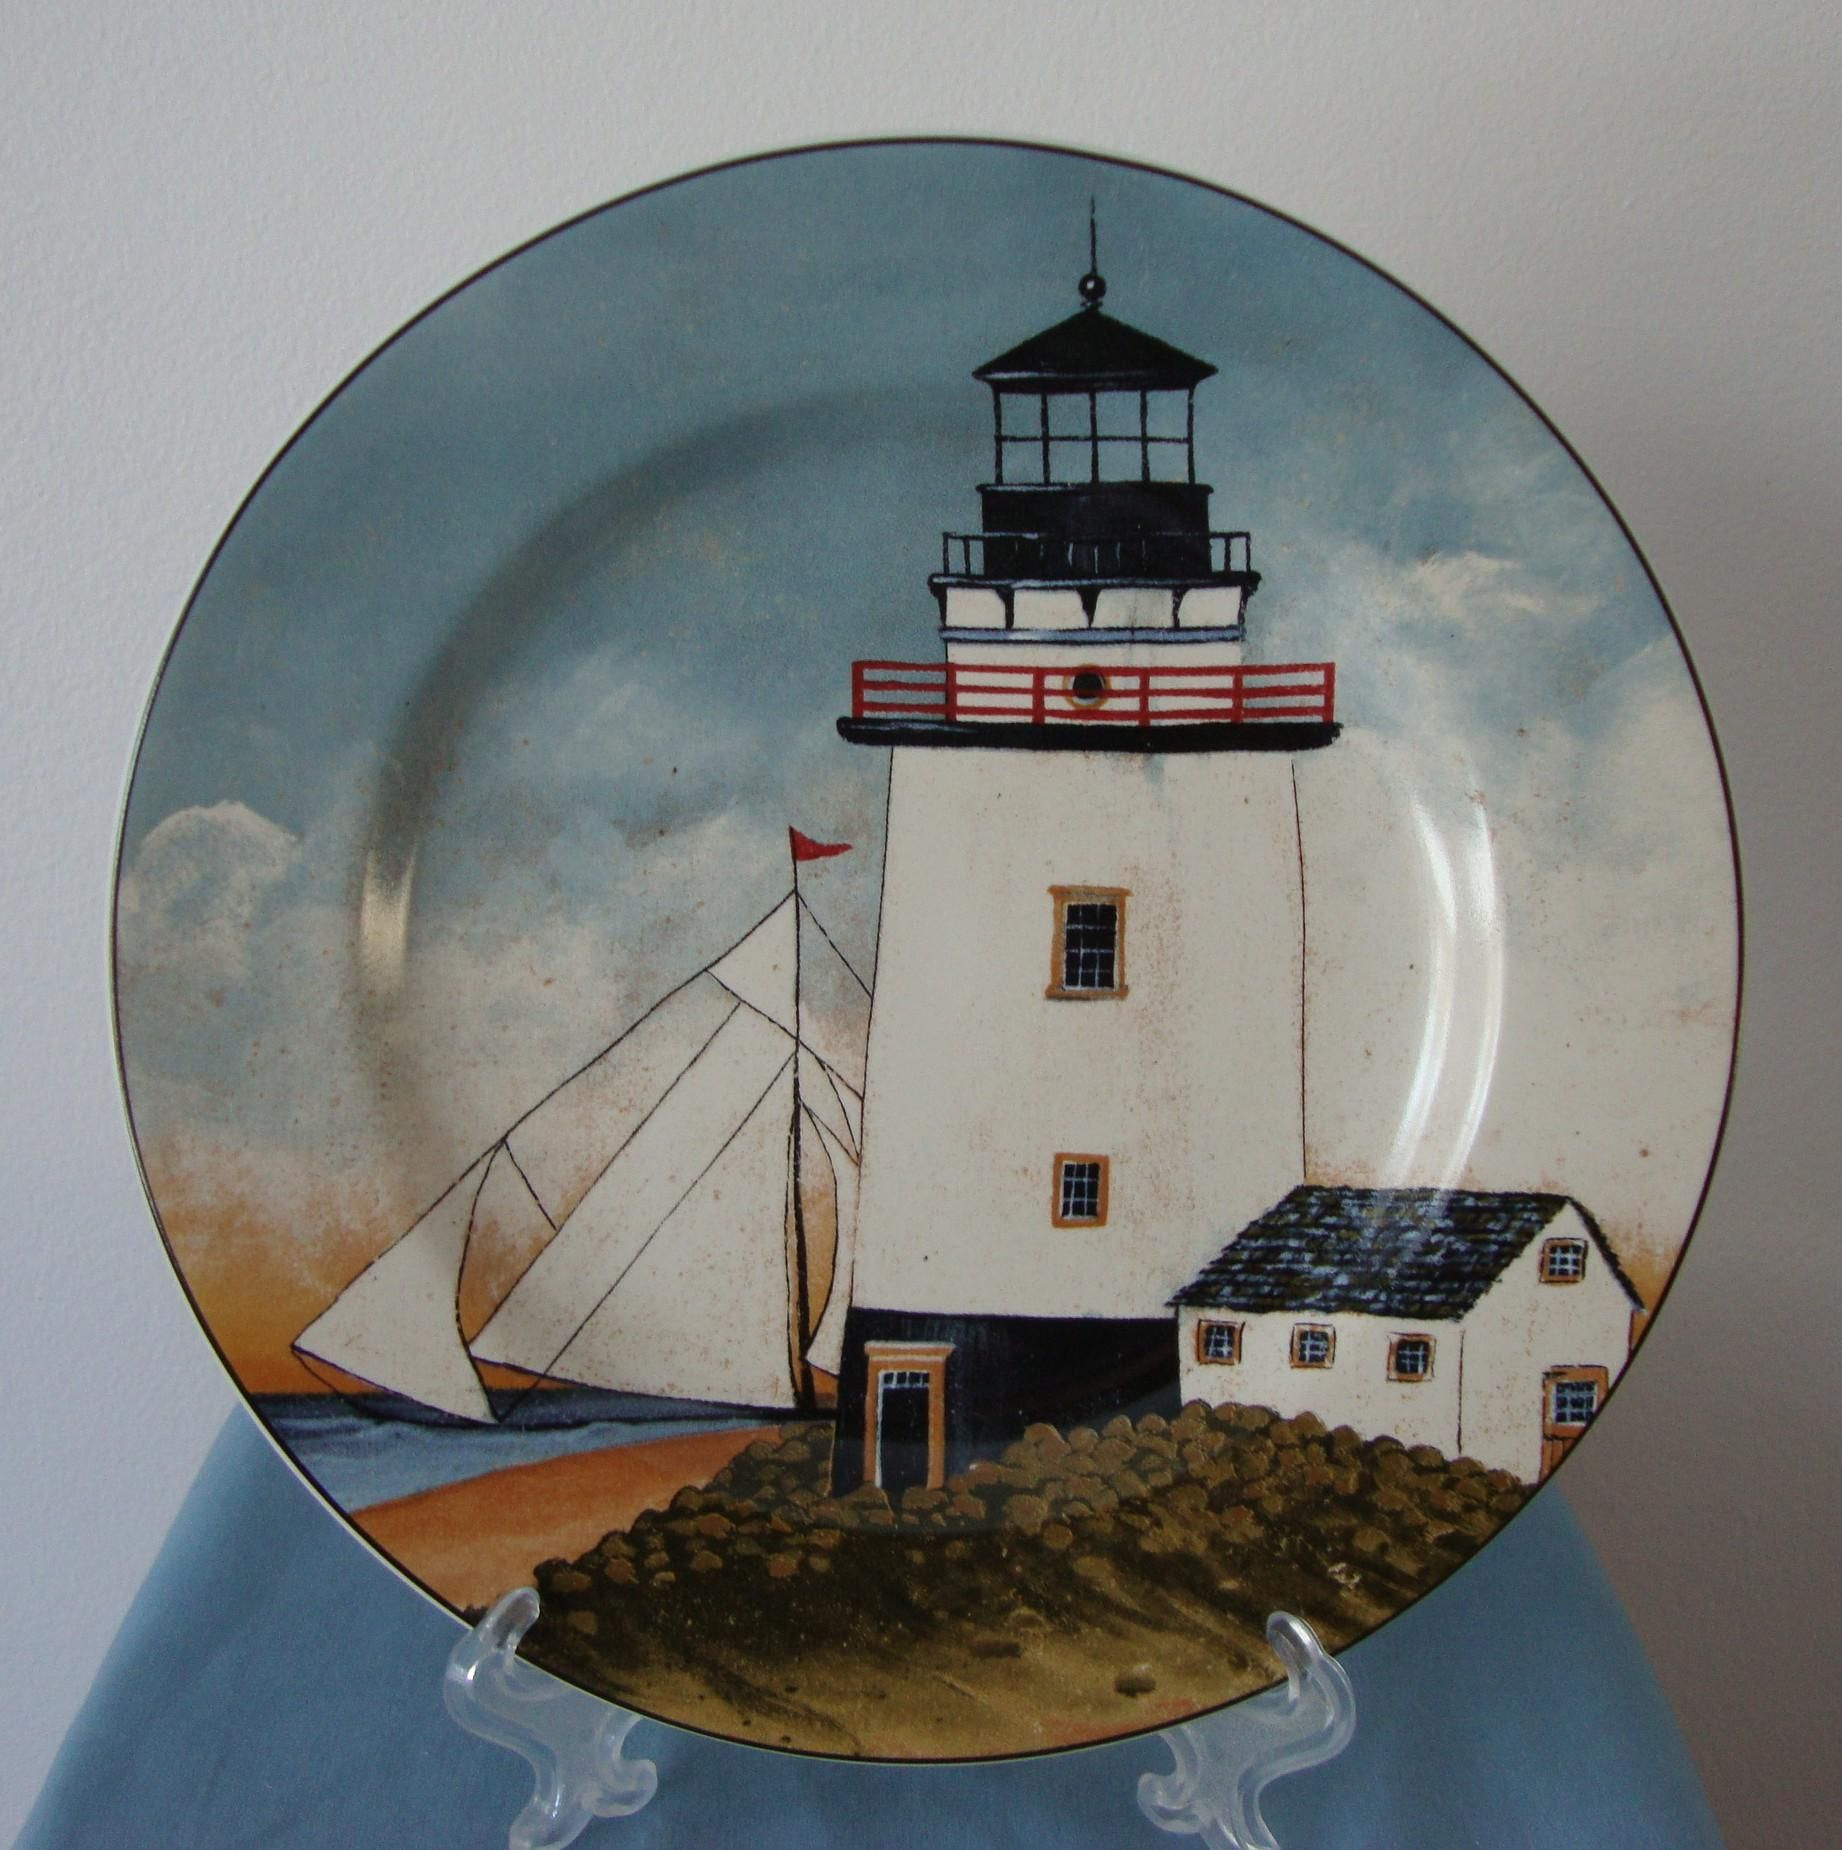 David Carter Brown BY THE SEA Lighthouse Plate Oneida & David Carter Brown BY THE SEA Lighthouse Plate Oneida | Do the ...